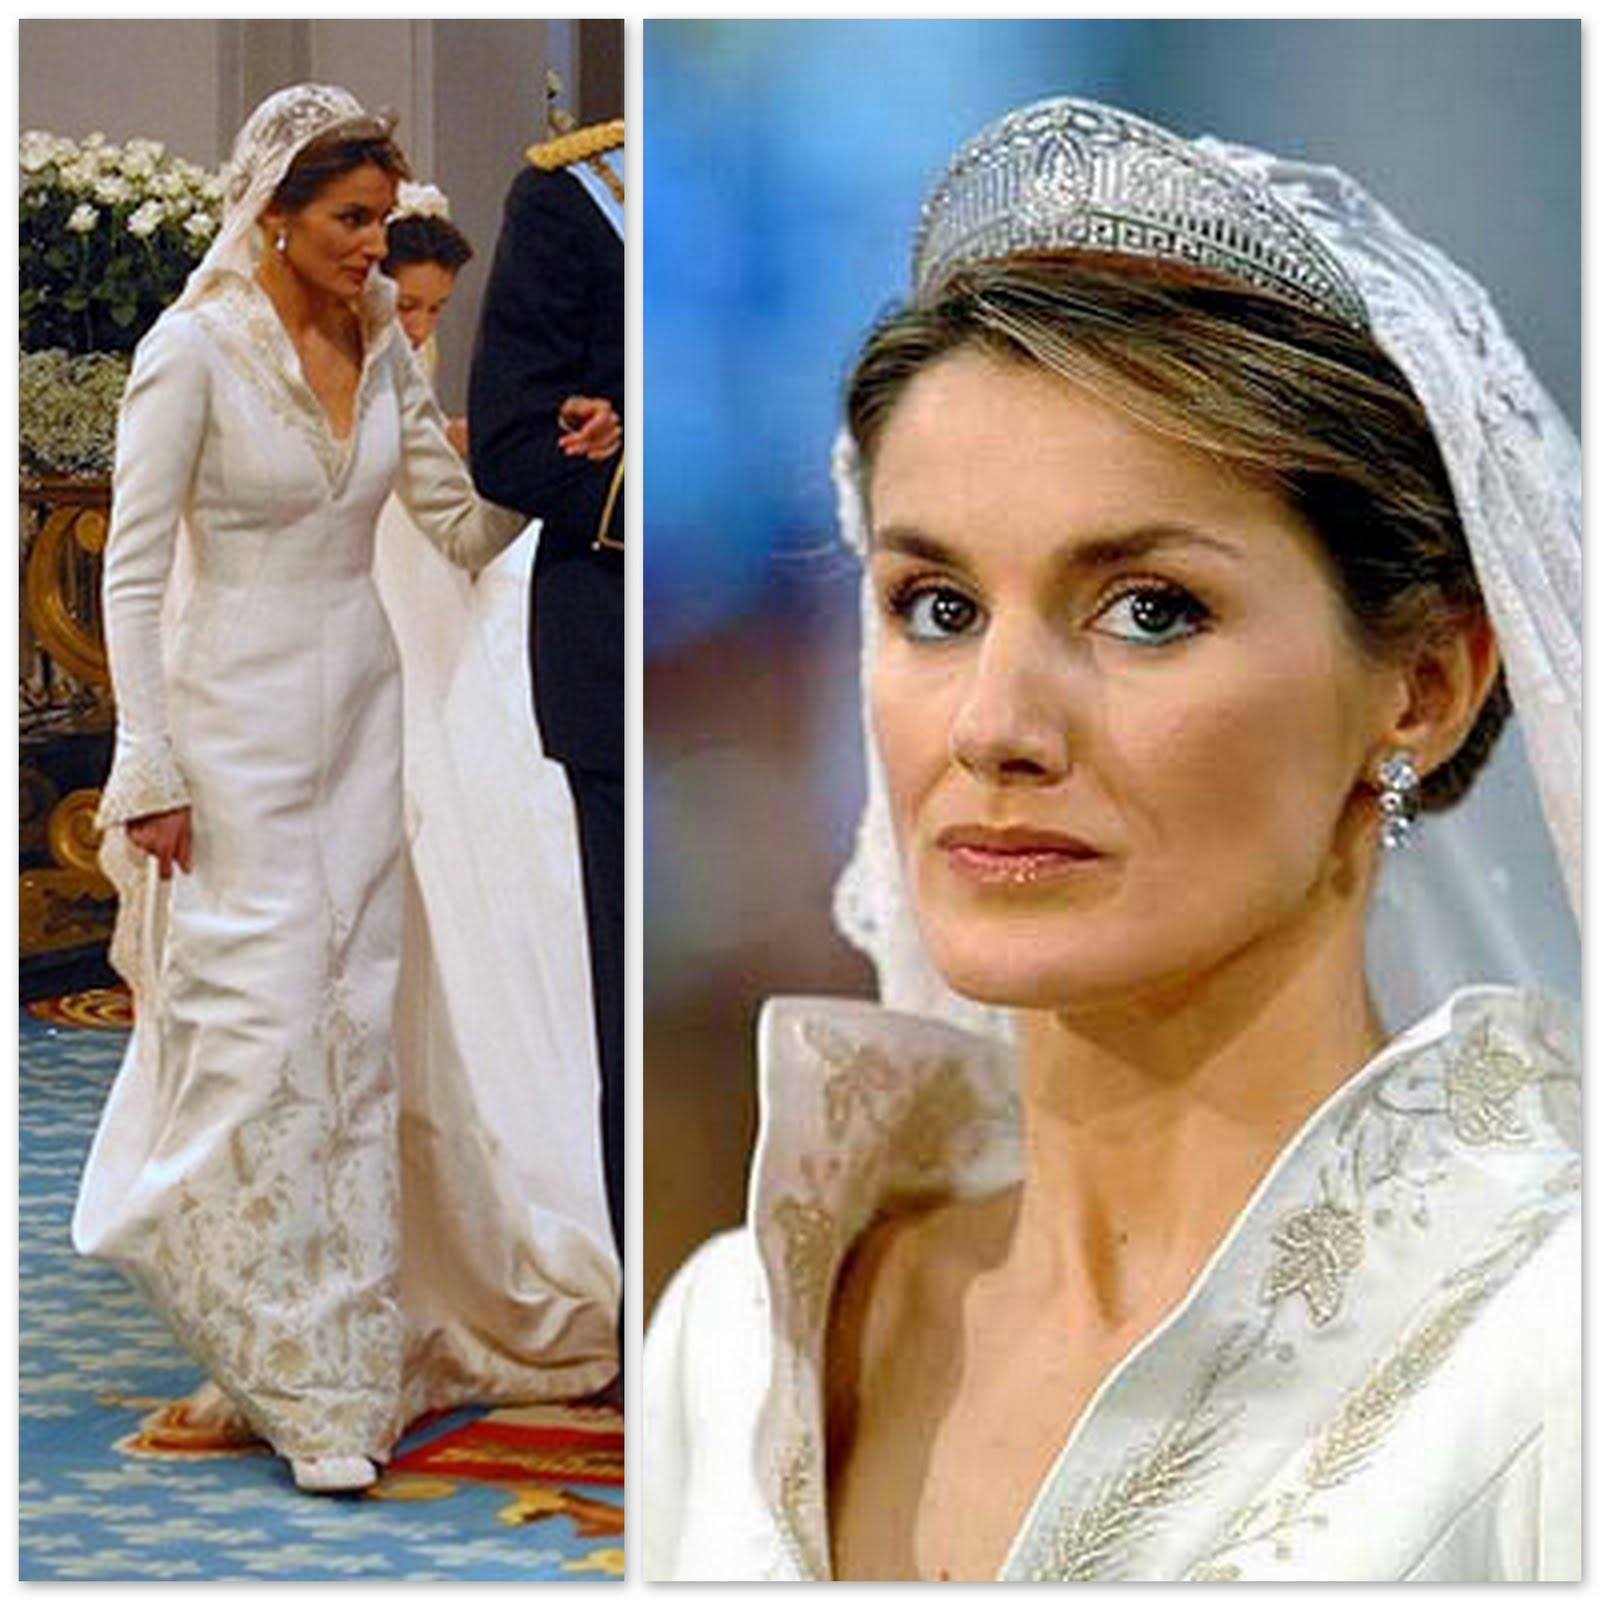 Iconic Wedding Dresses & their Iconic Spin-Offs   Fantastical ...